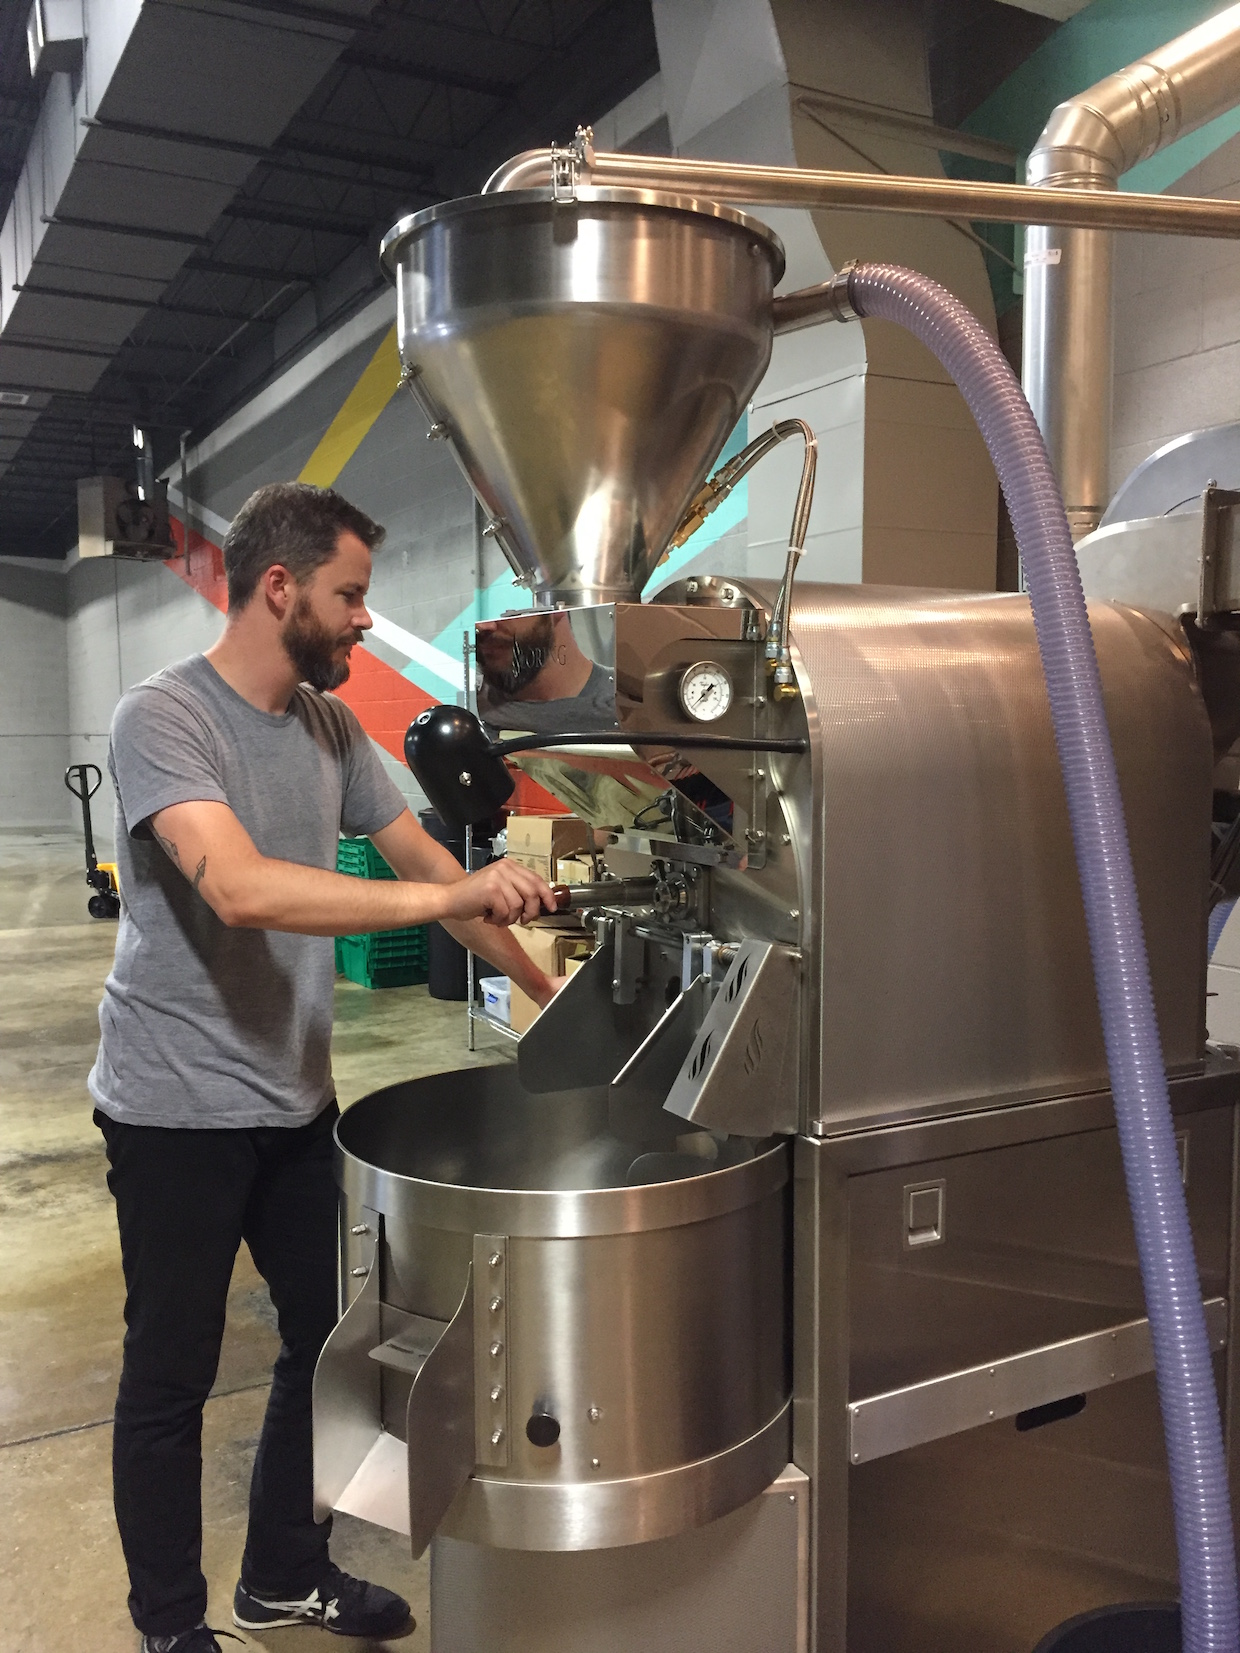 Evan Howe at the new Loring Falcon roaster.